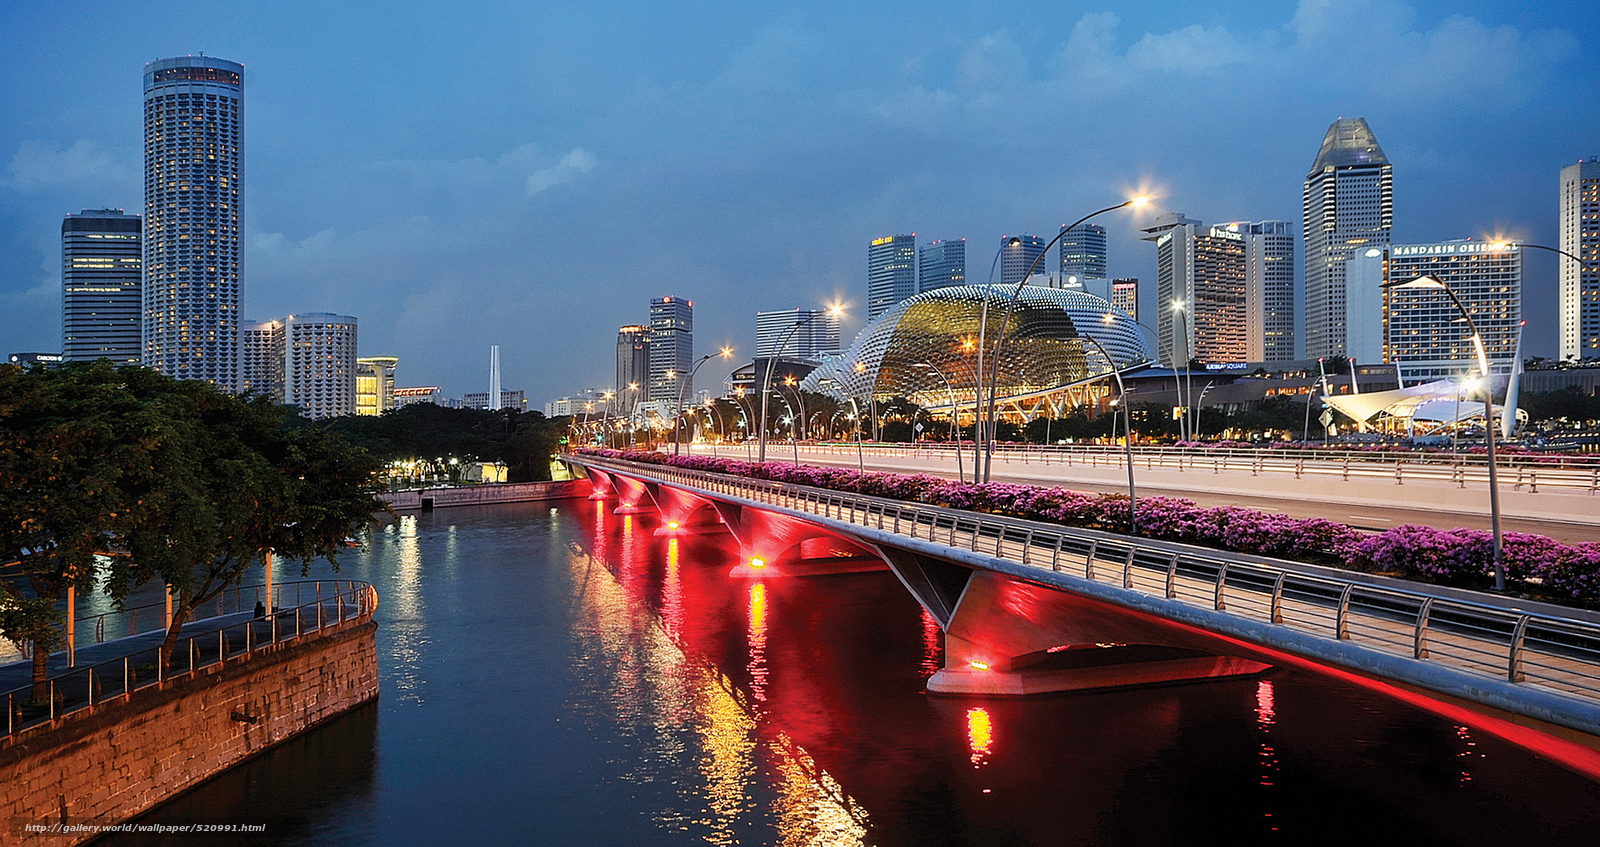 Download wallpaper singapore evening twilight lights for Wallpaper home singapore